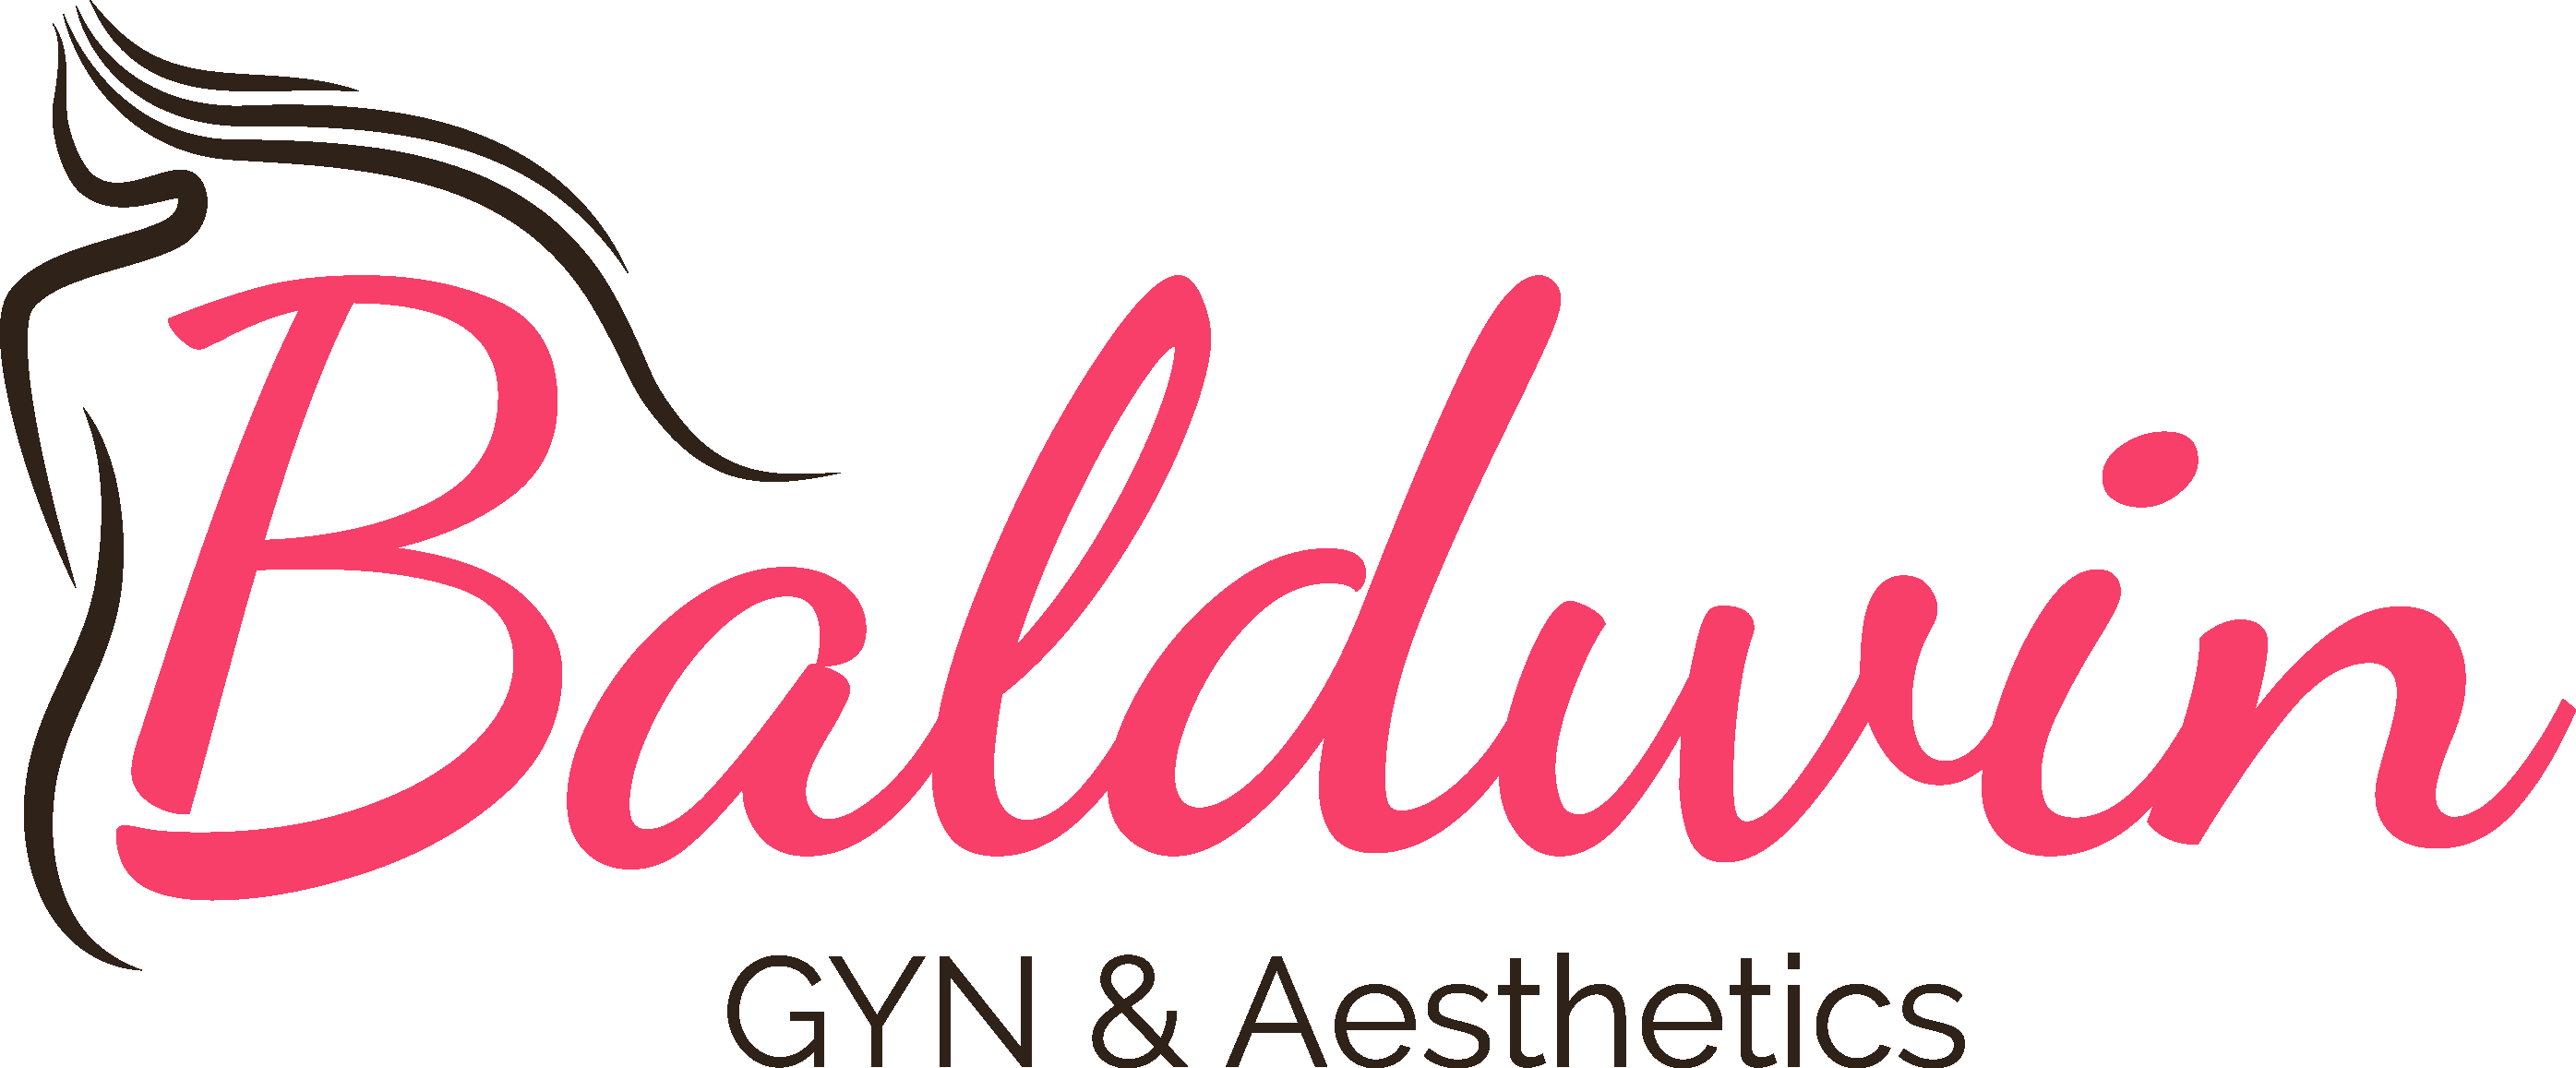 Baldwin GYN & Aesthetics Logo will link to the home page